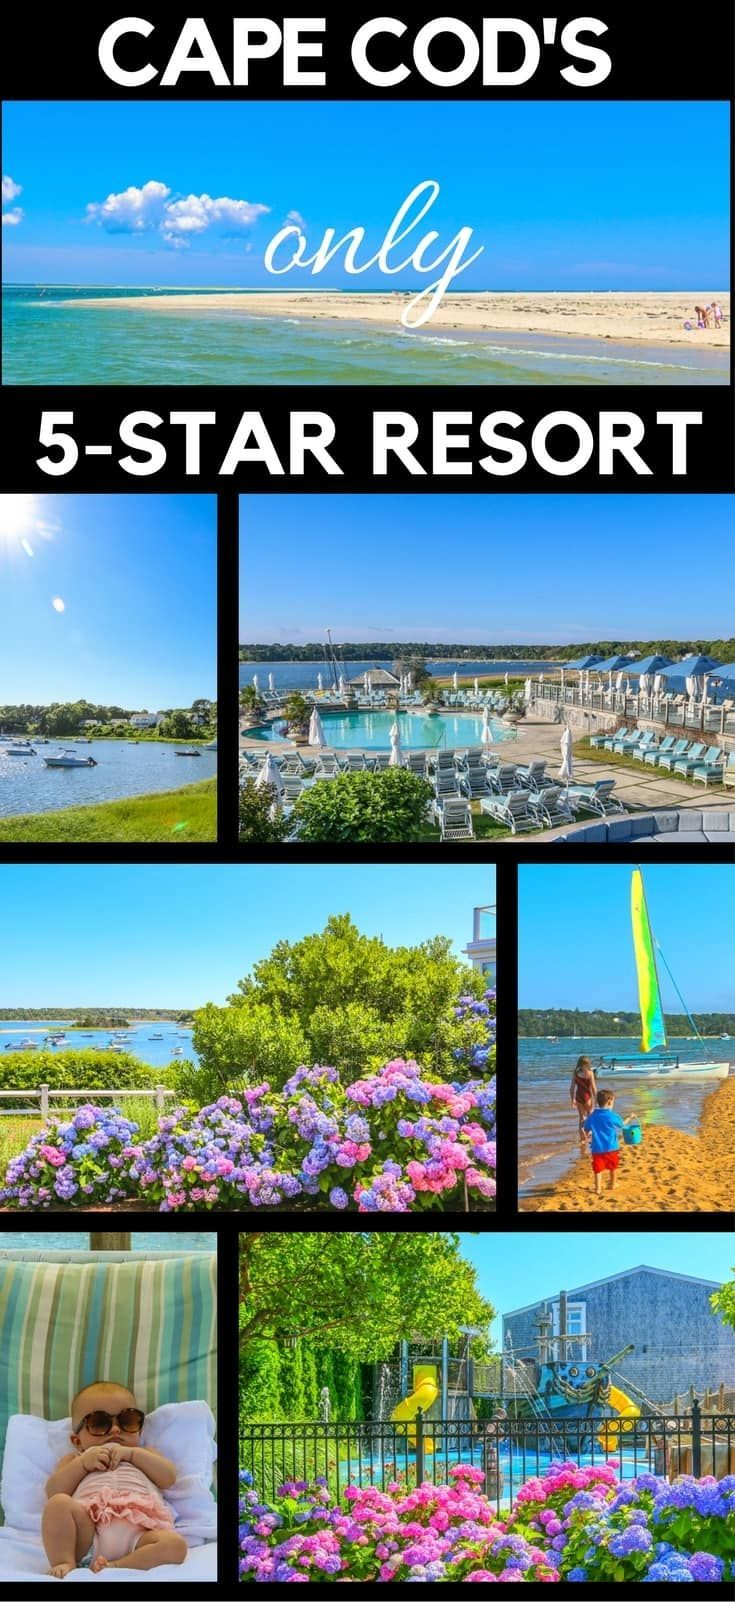 The Ultimate Cape Cod Luxury Resort For Families Family Travel Destinations Resort Luxury Family Travel